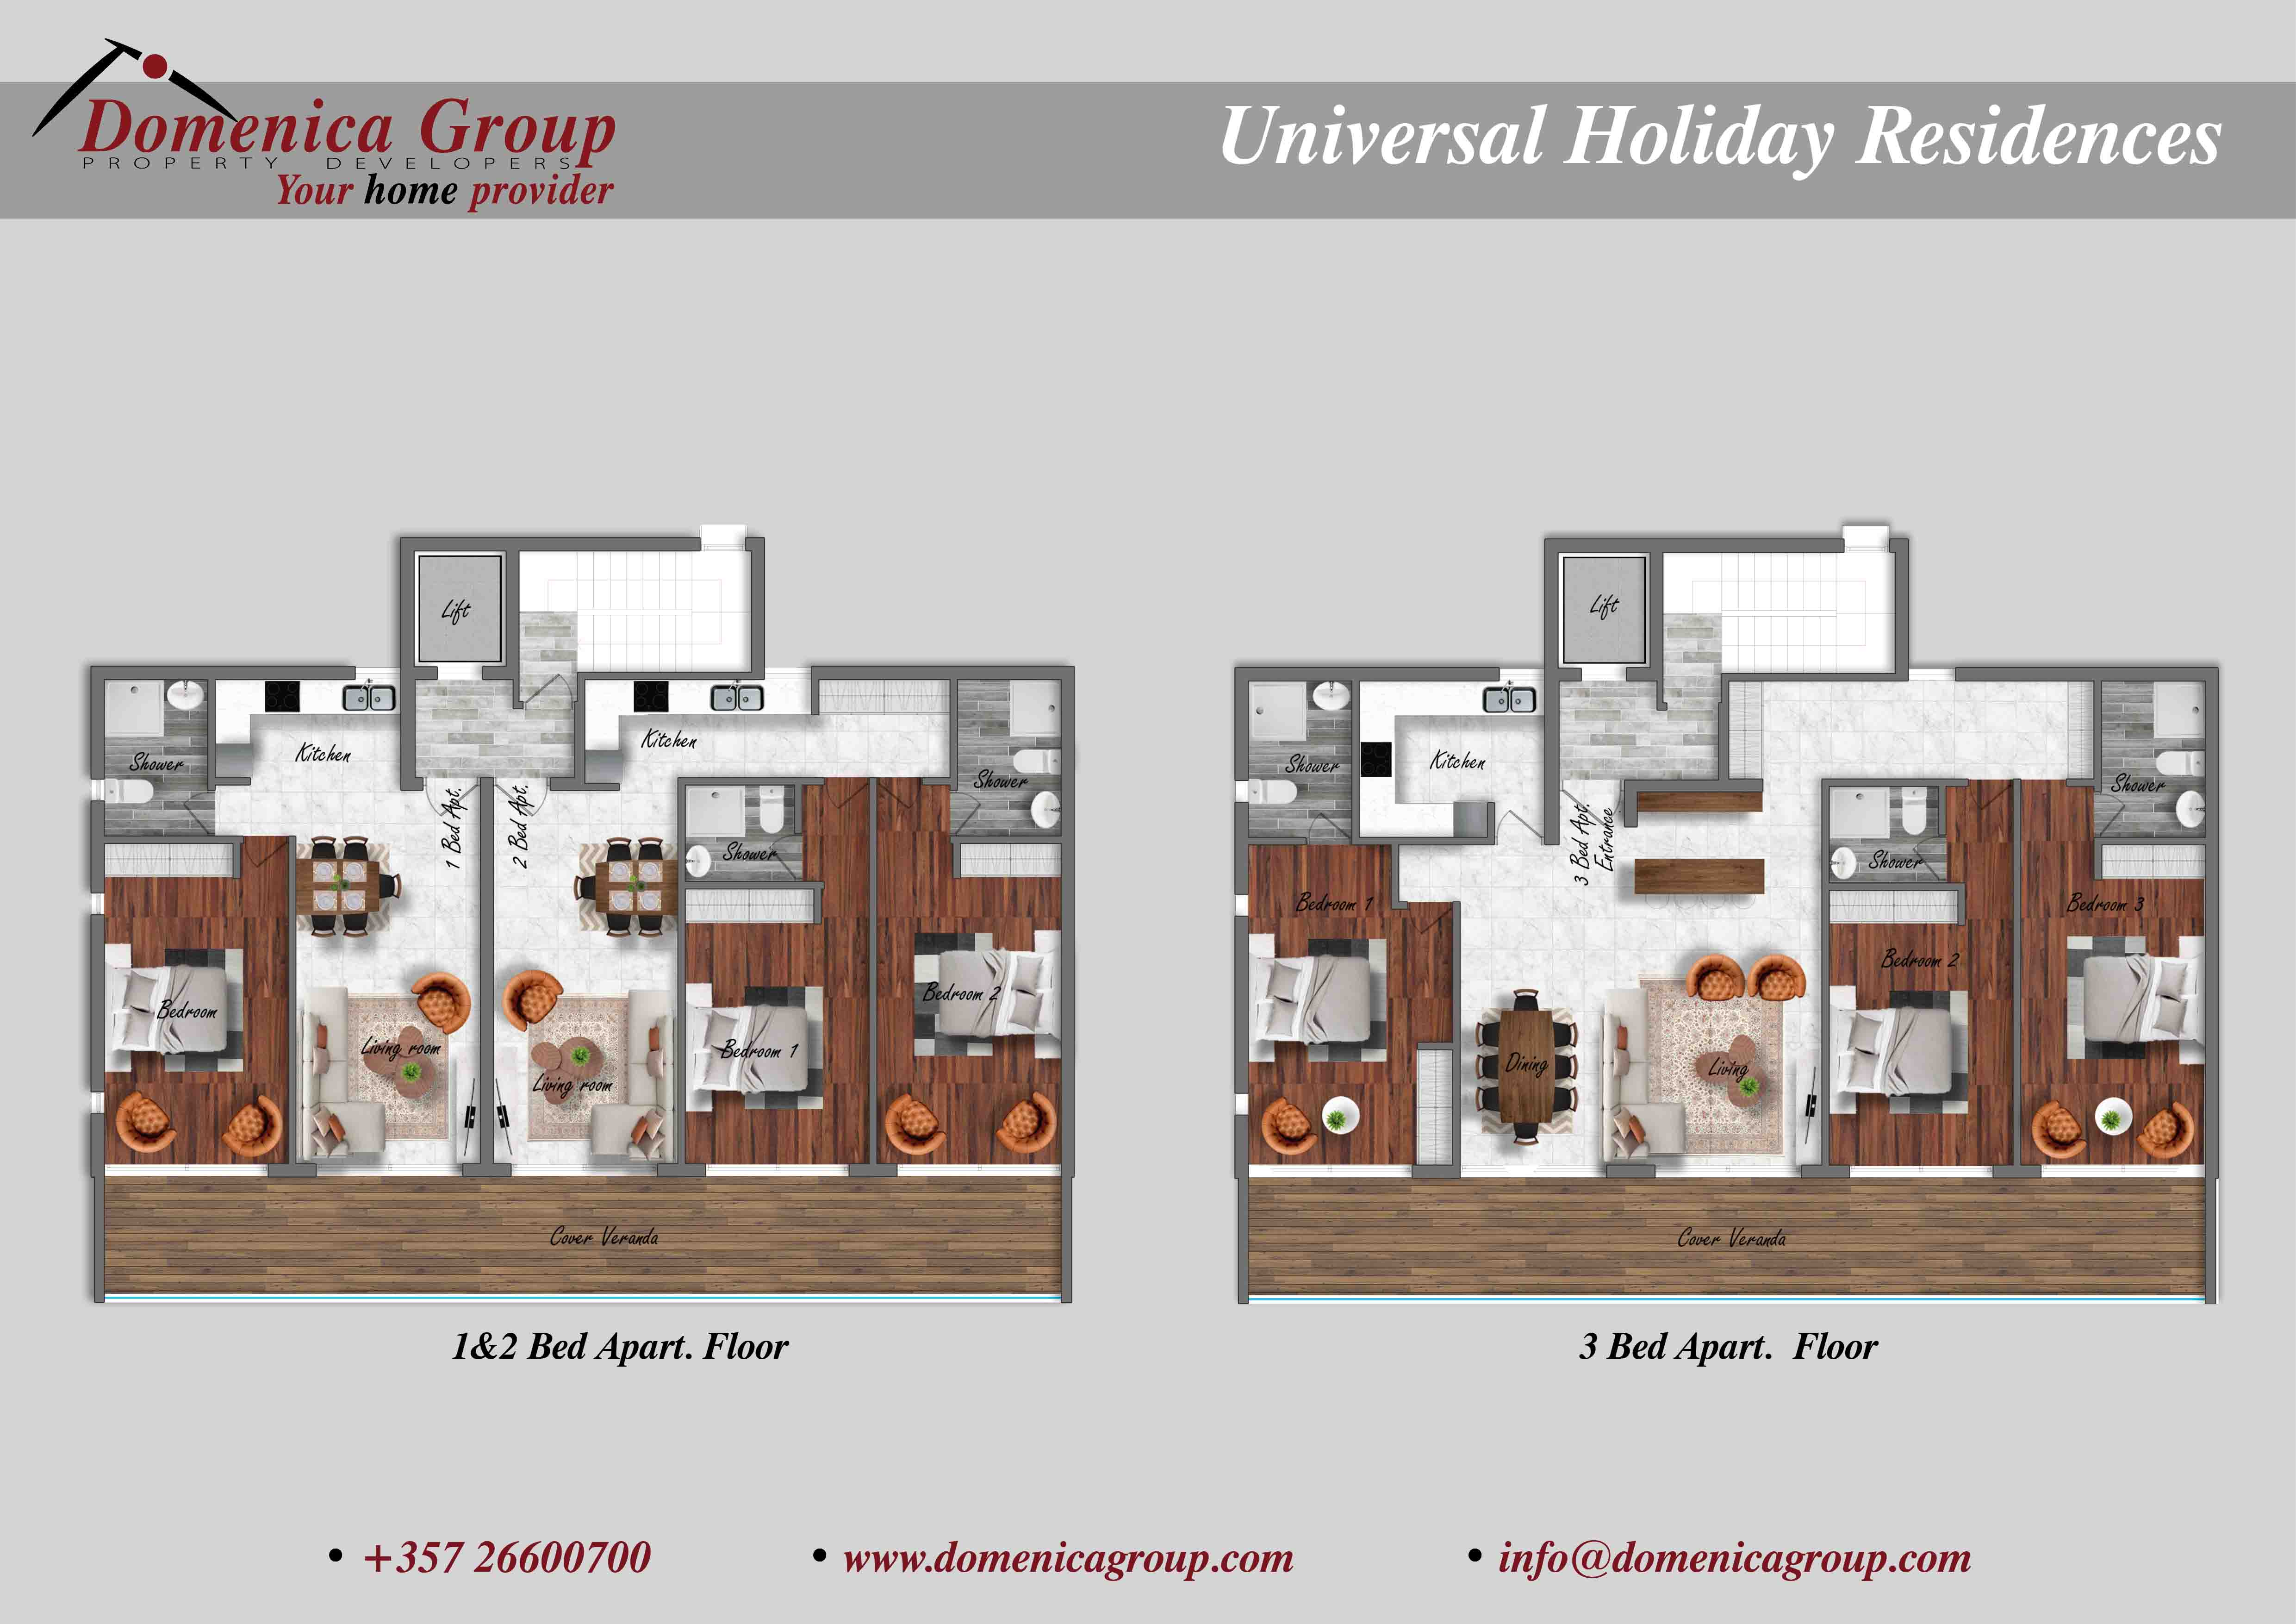 UNIVESAL HOLIDAY RESIDENCES 12 Bed Apt 3 Bed Apt low res